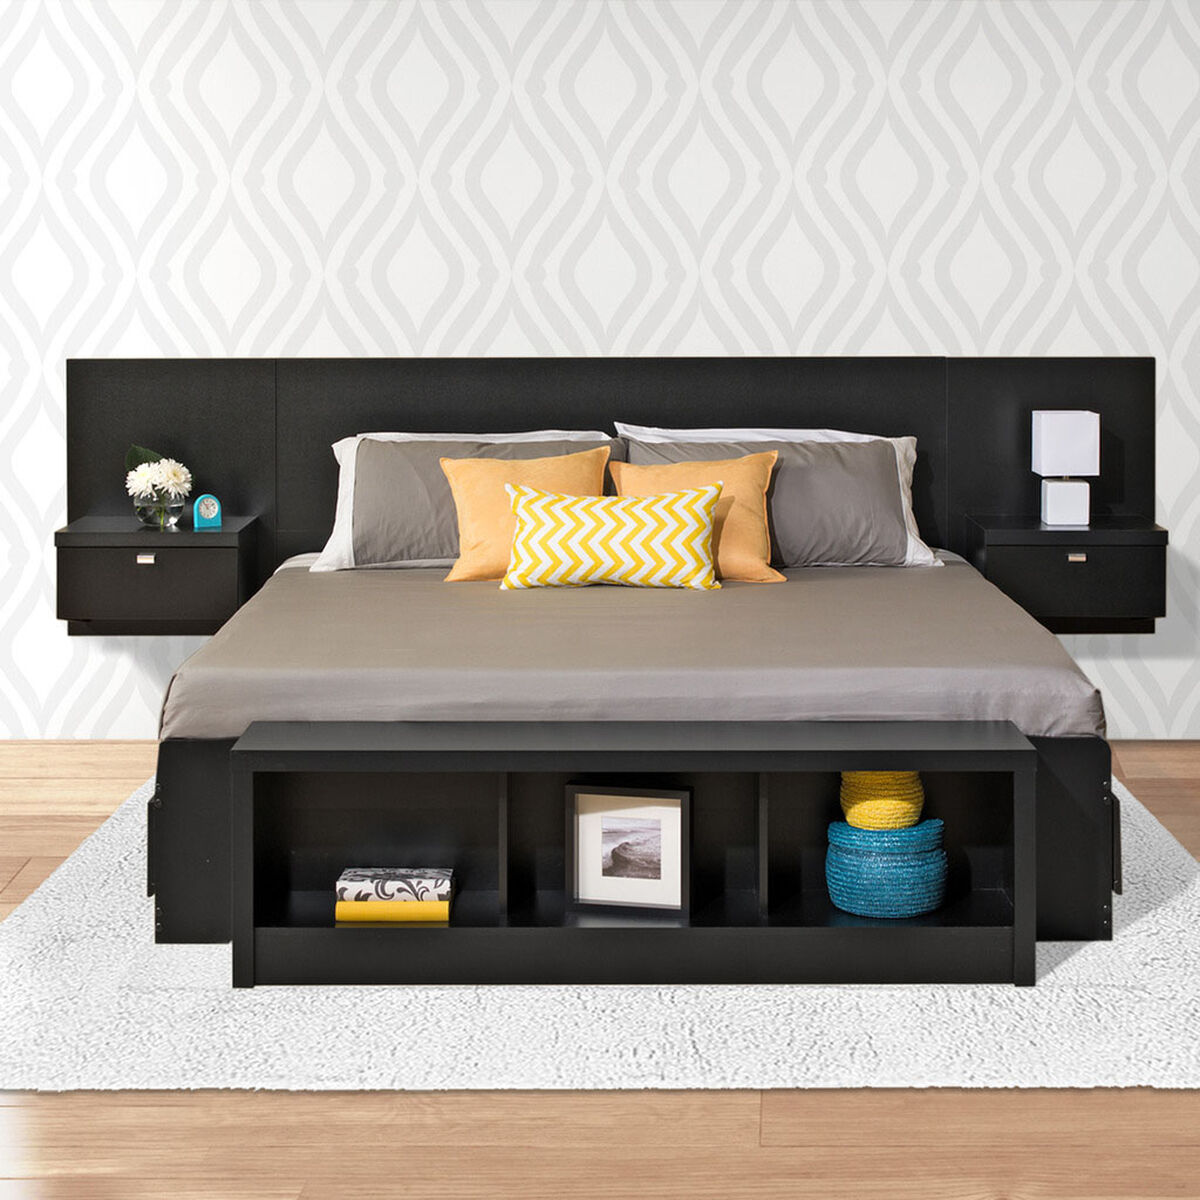 Our series 9 designer floating king size headboard with attached nightstands black is on sale